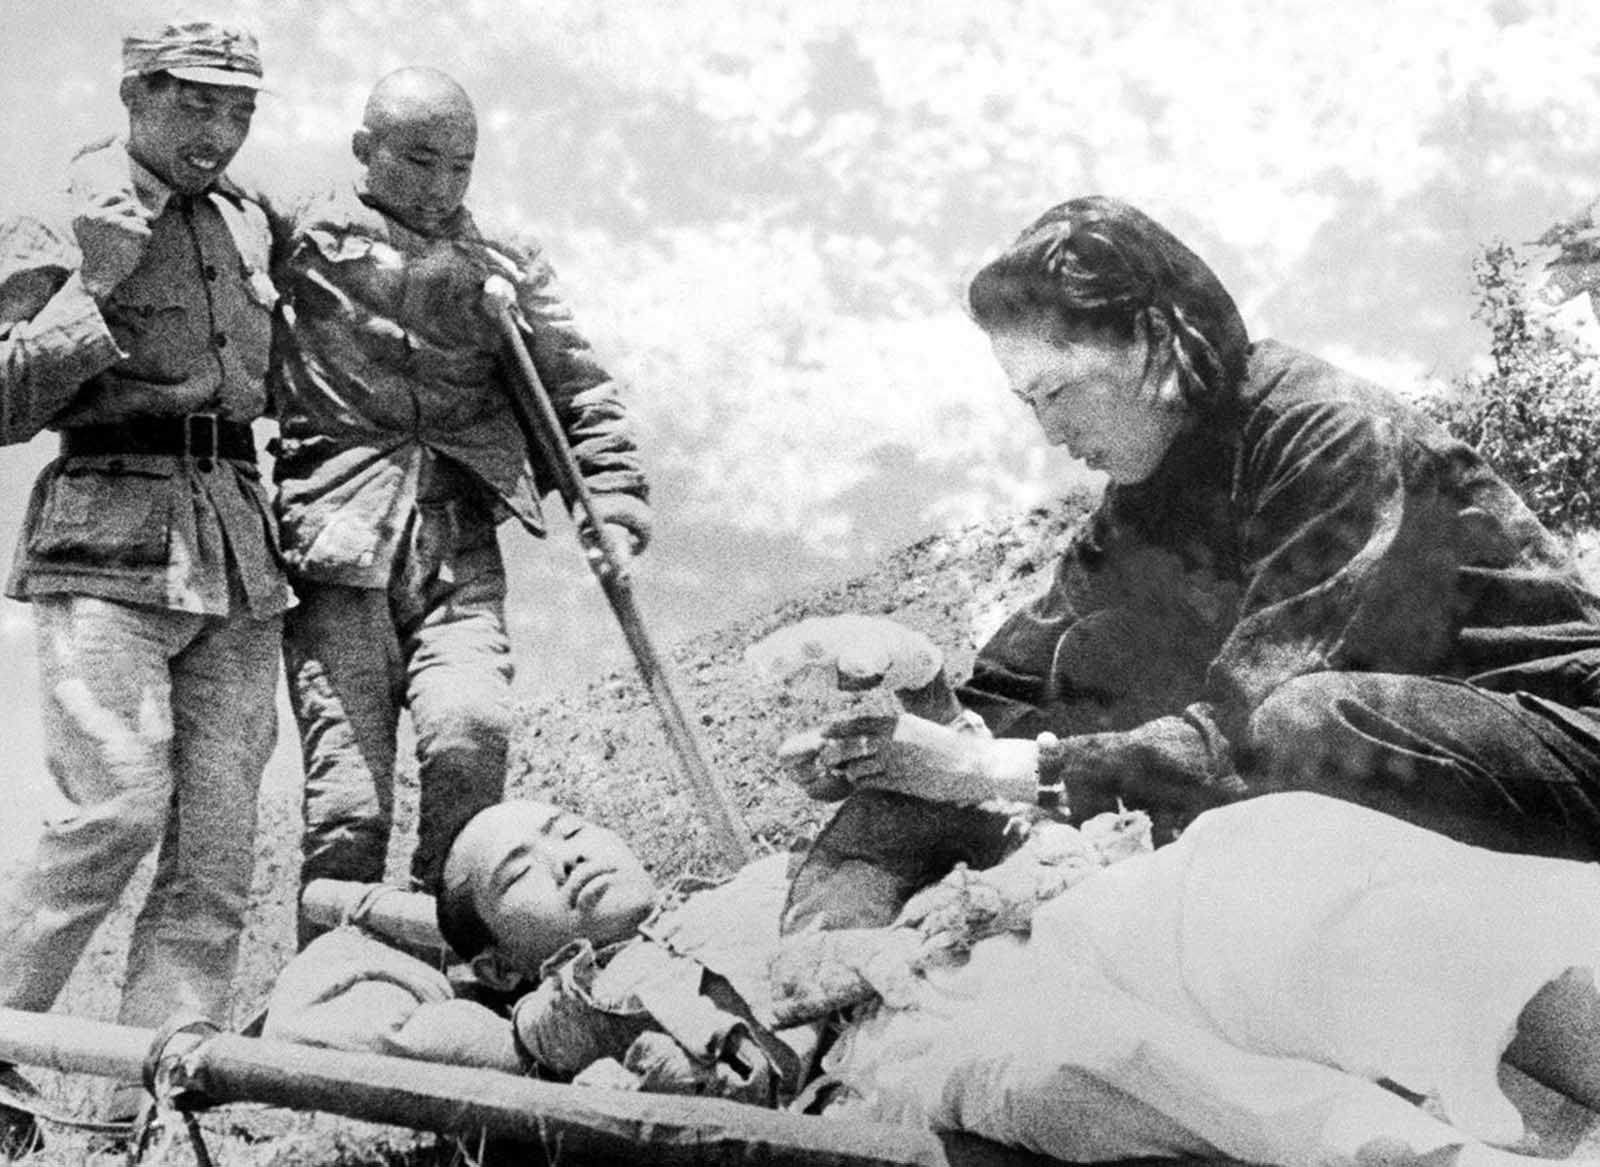 A nurse wraps a bandage around the hand of a Chinese soldier as another wounded soldier limps up for first aid treatment during fighting on the Salween River front in Yunnan Province, China, on June 22, 1943.